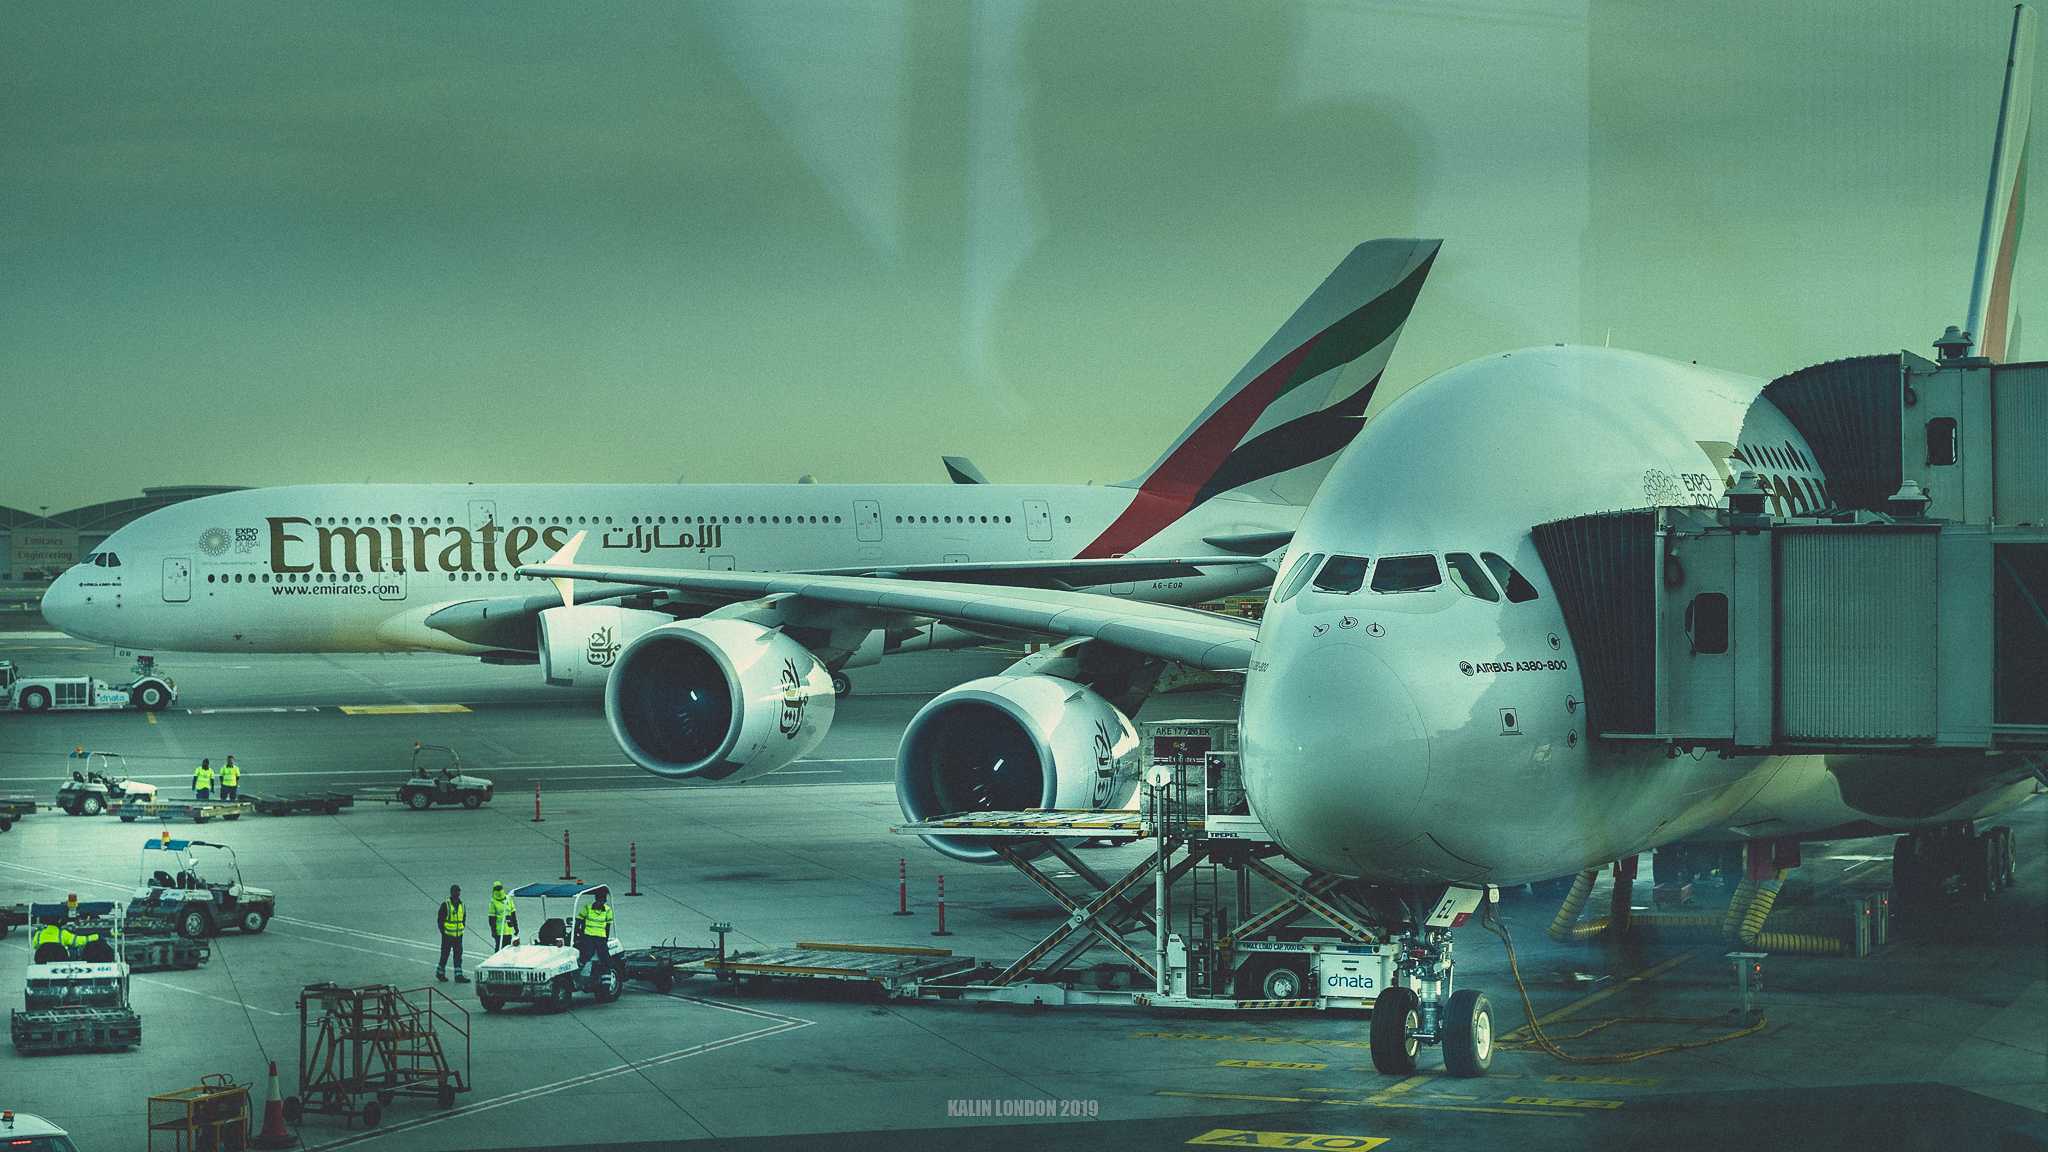 Two Airbus A380 at Dubai airport